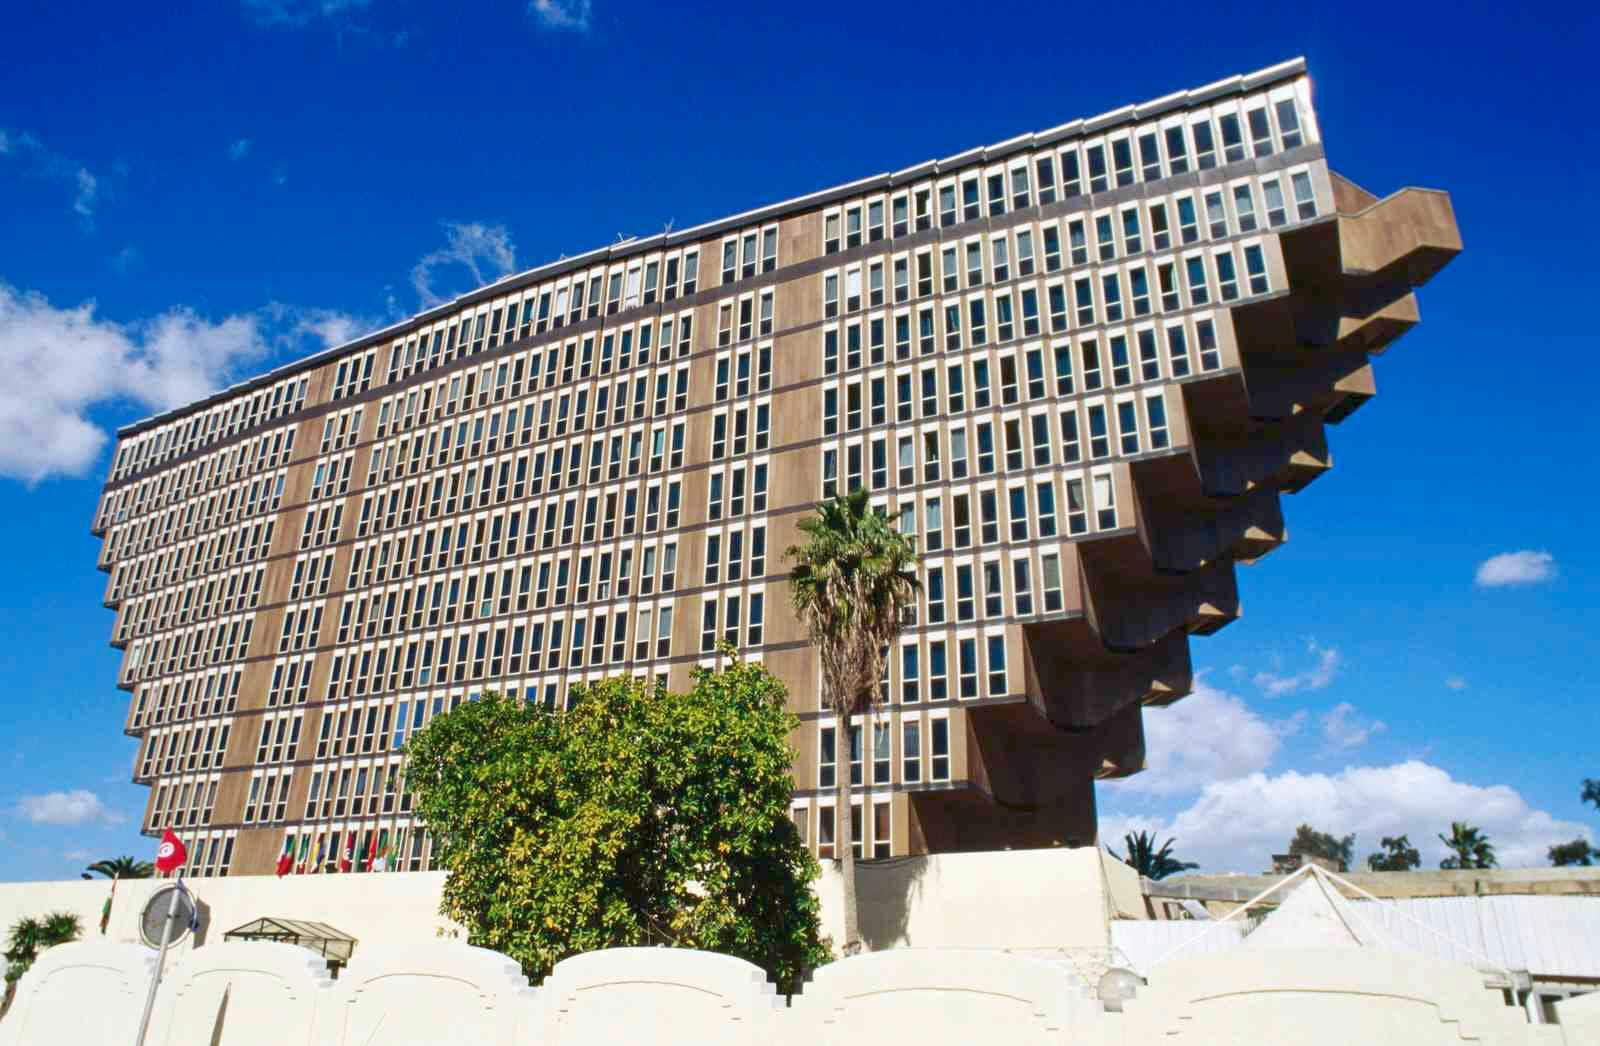 The 'upside-down' hotel said to have inspired Star Wars 'Sandcrawler' faces demolition